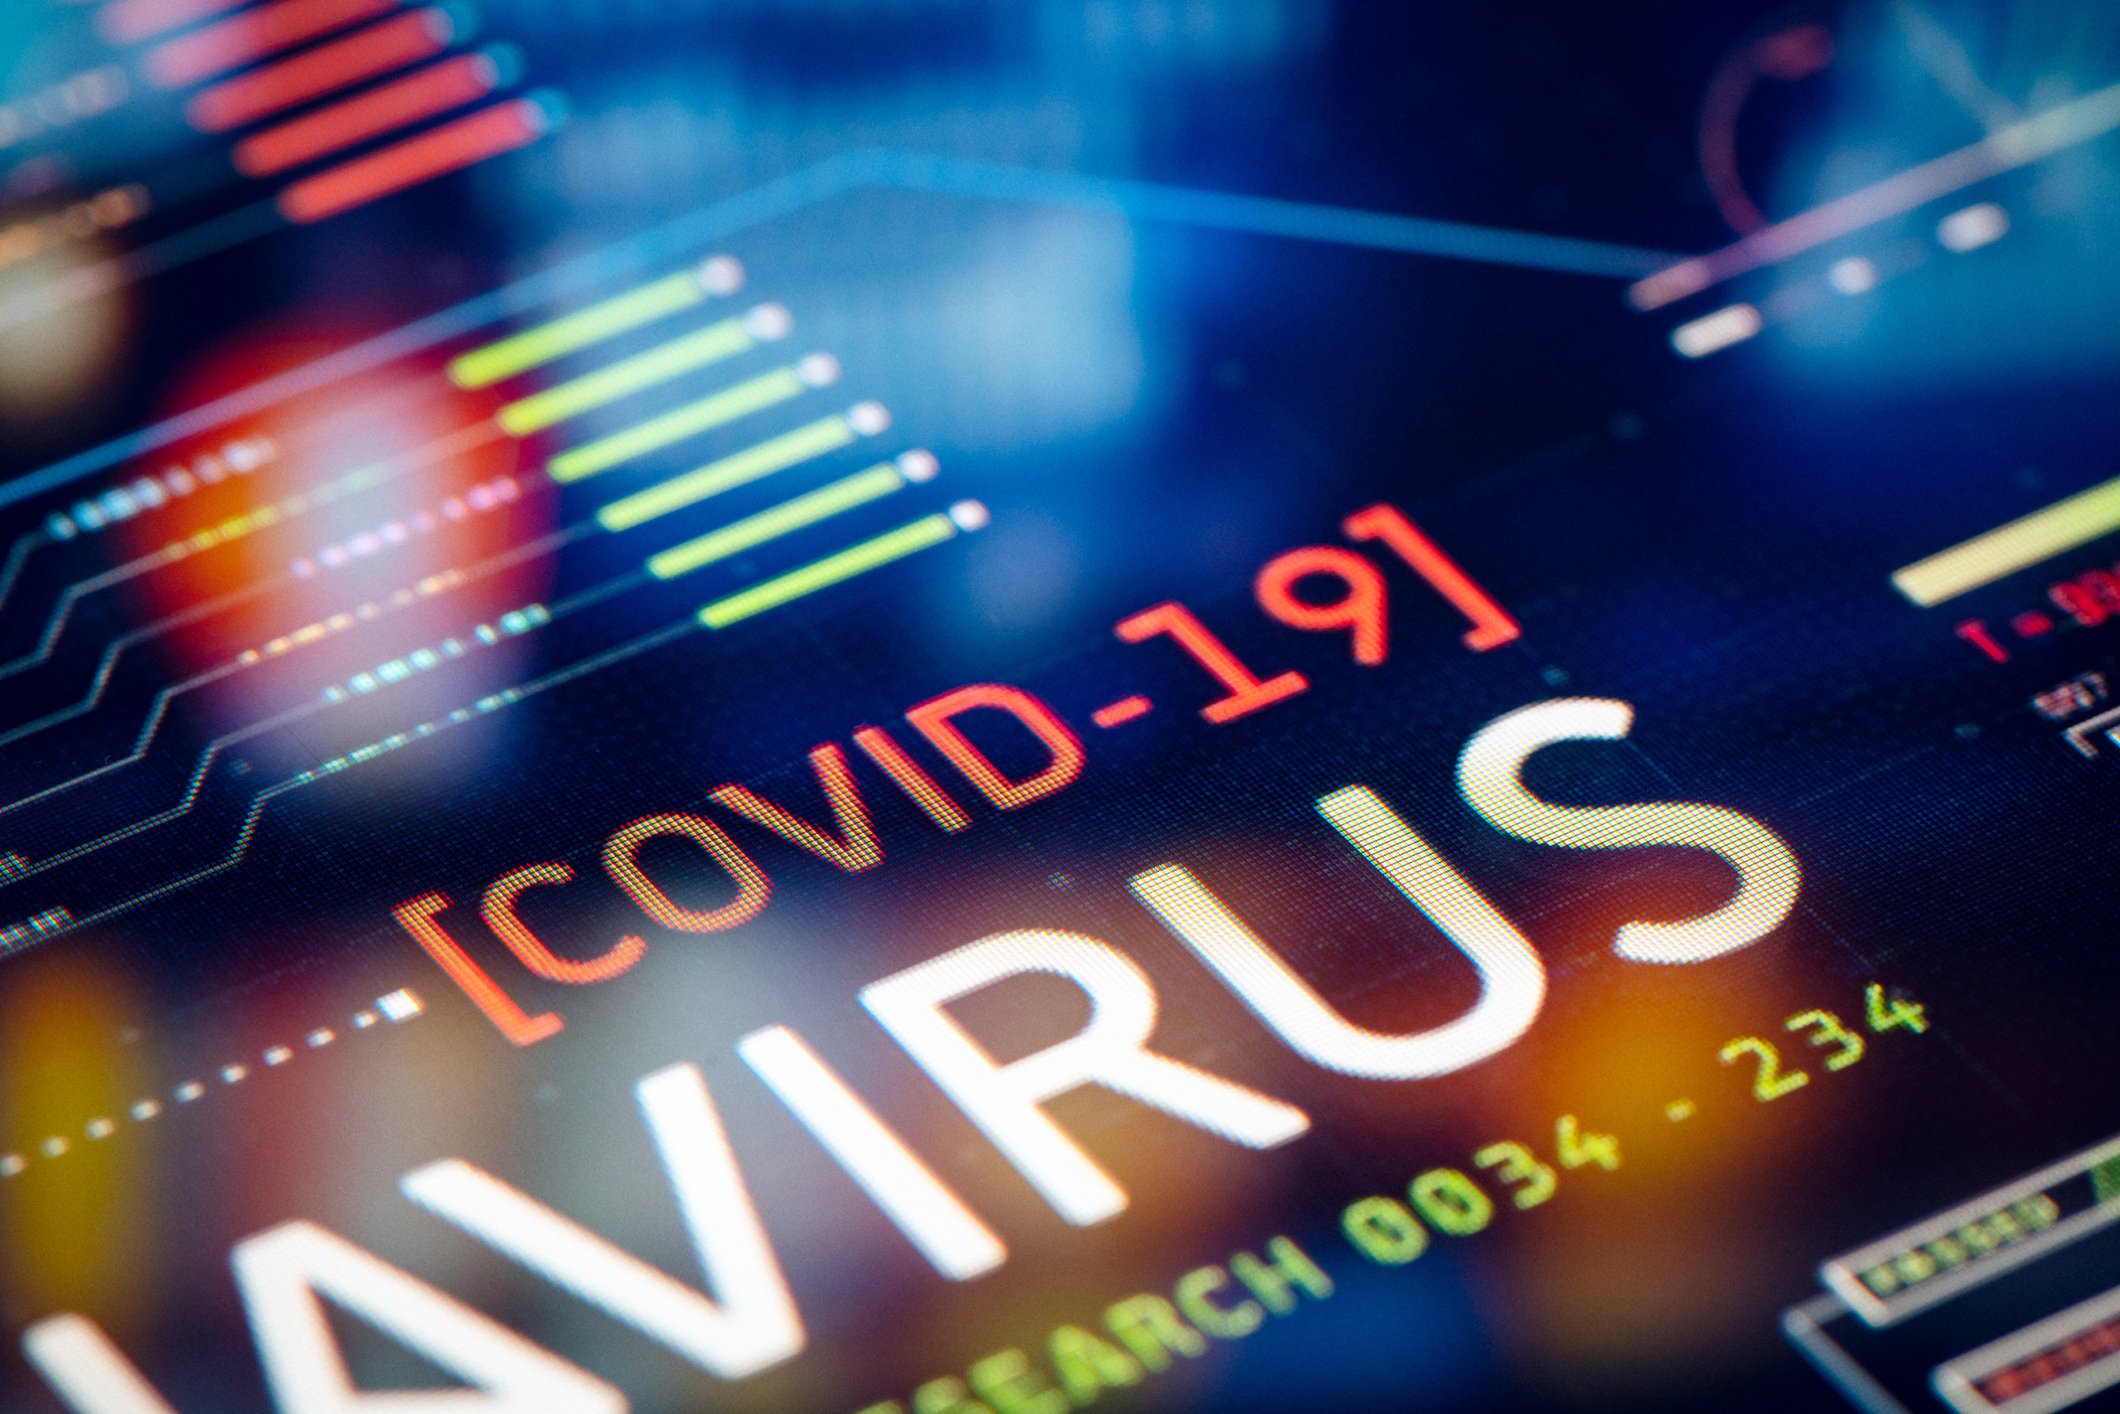 Detect and Prevent Phishing Scams and Cybersecurity Risks in the Coronavirus (COVID-19) Era